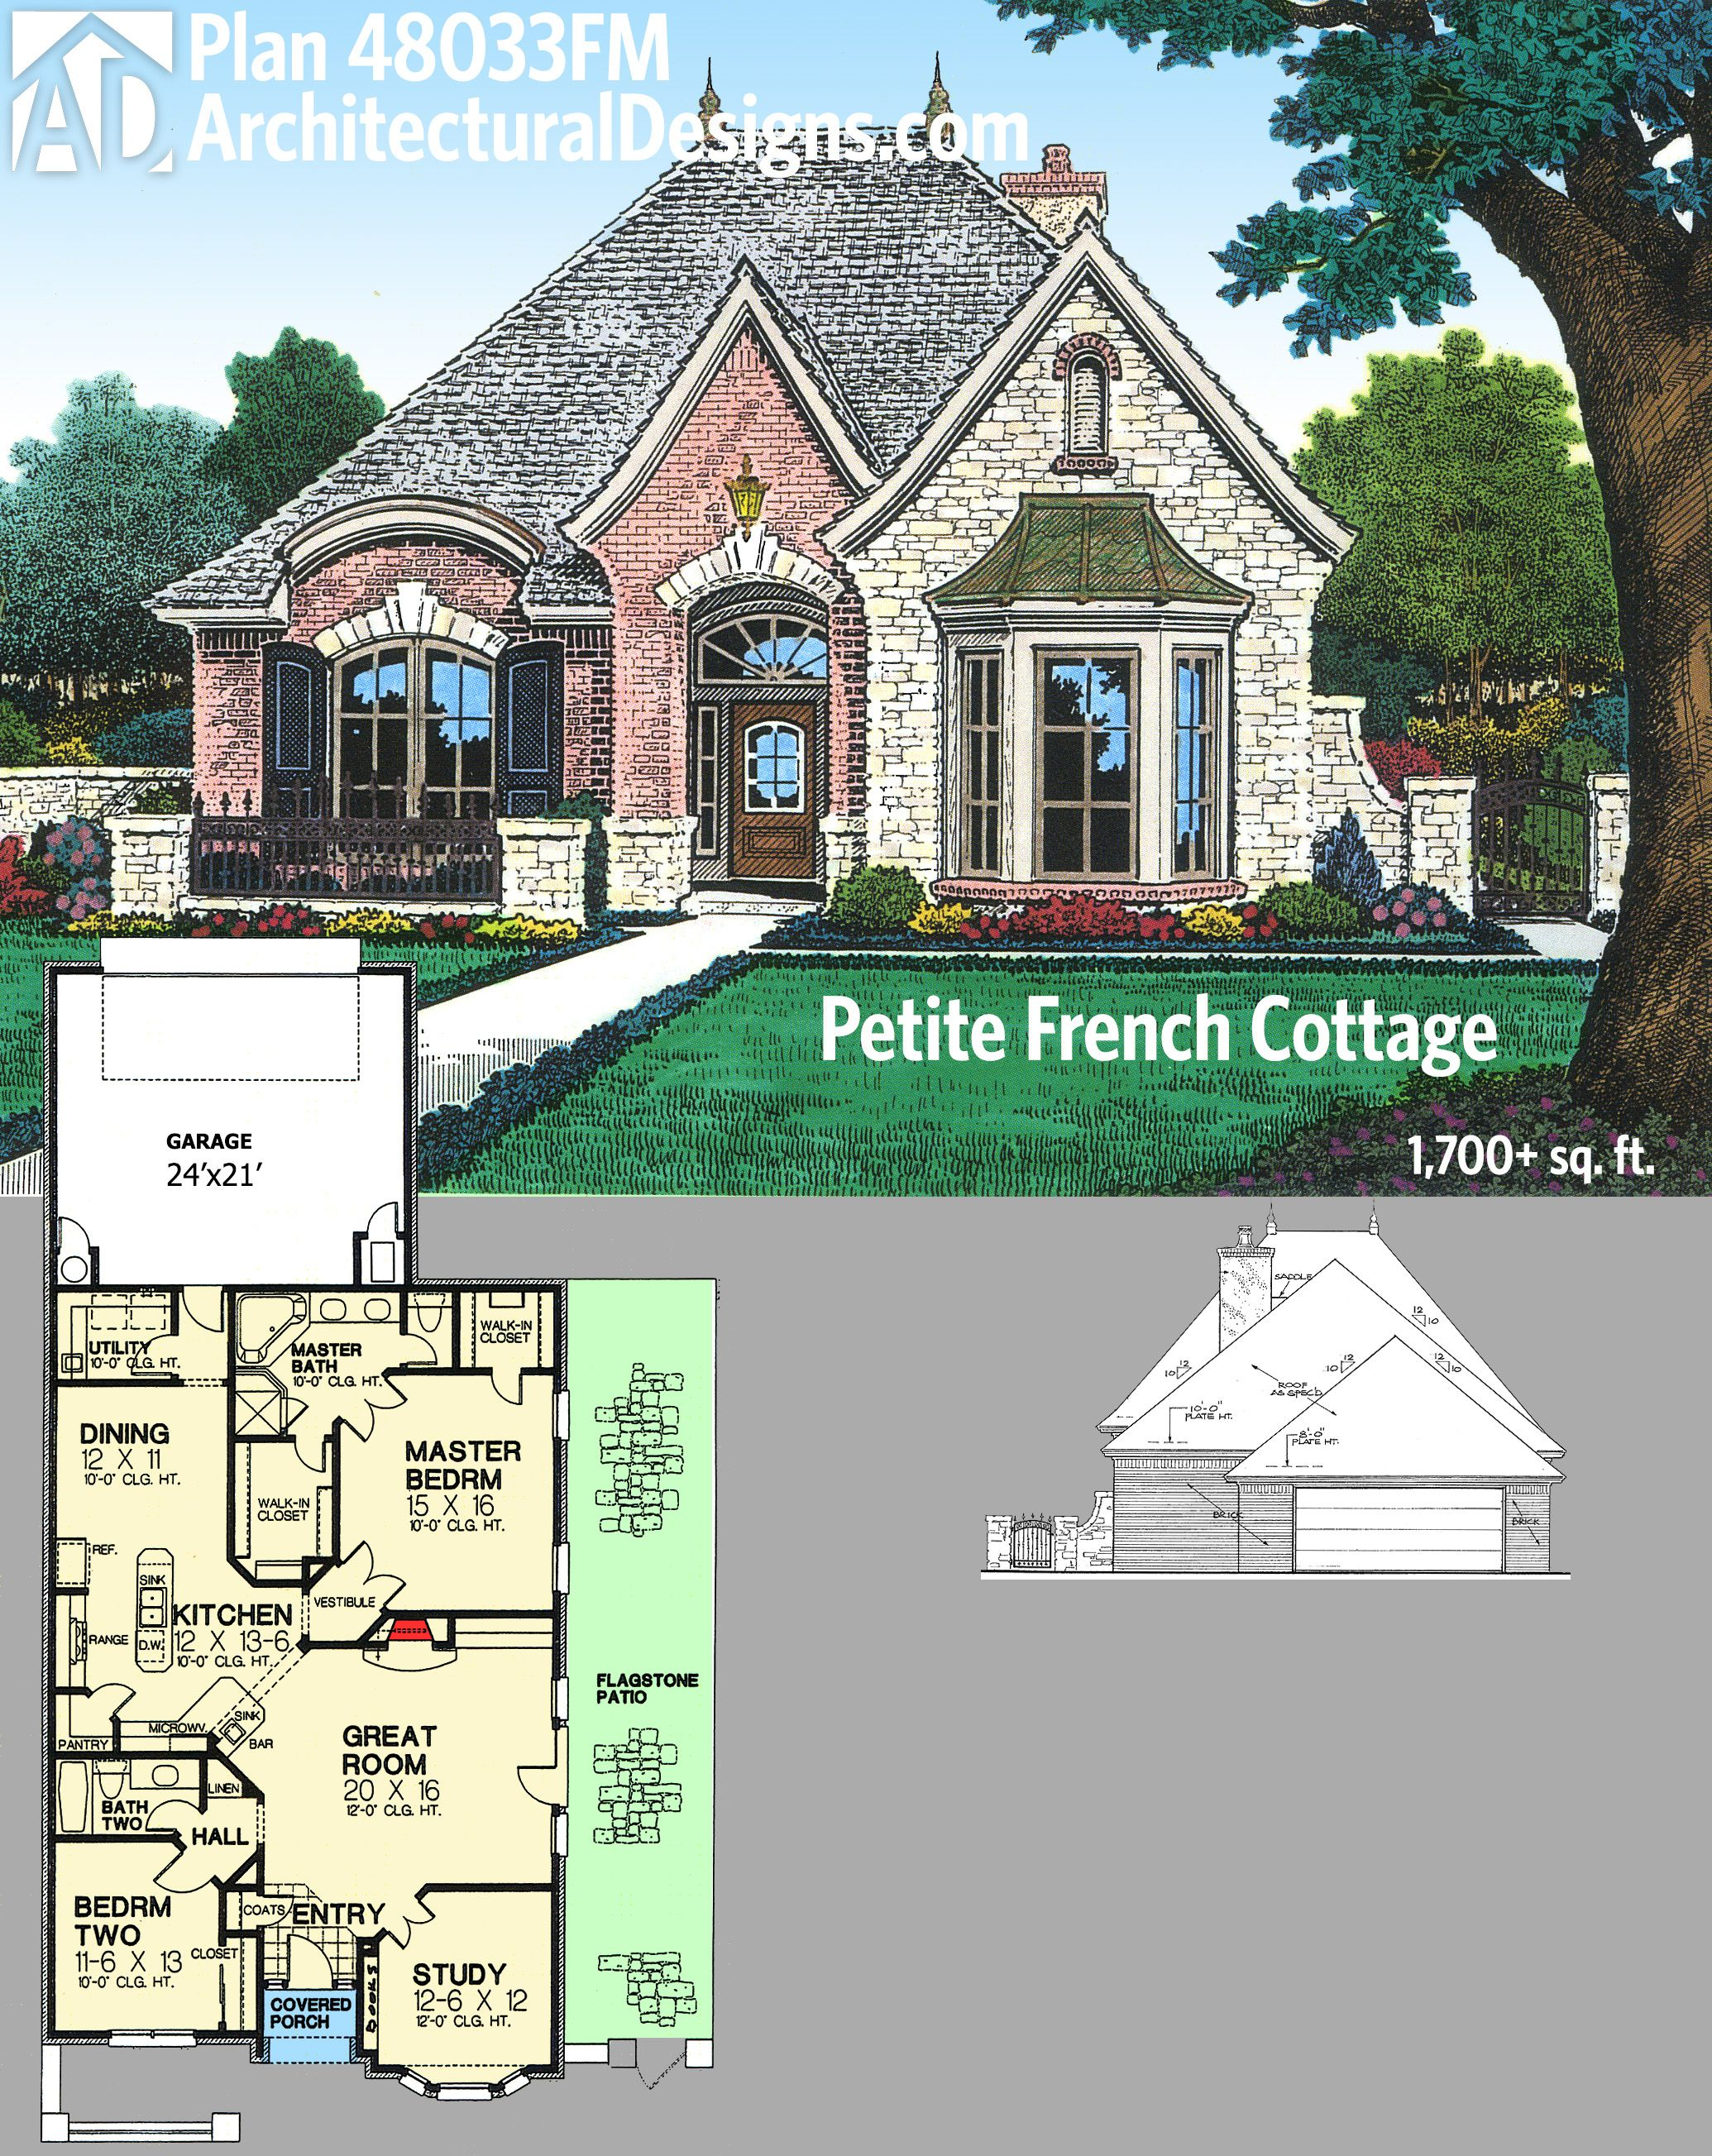 plan 92377mx: 3 bed dog trot house plan with sleeping loft | dog